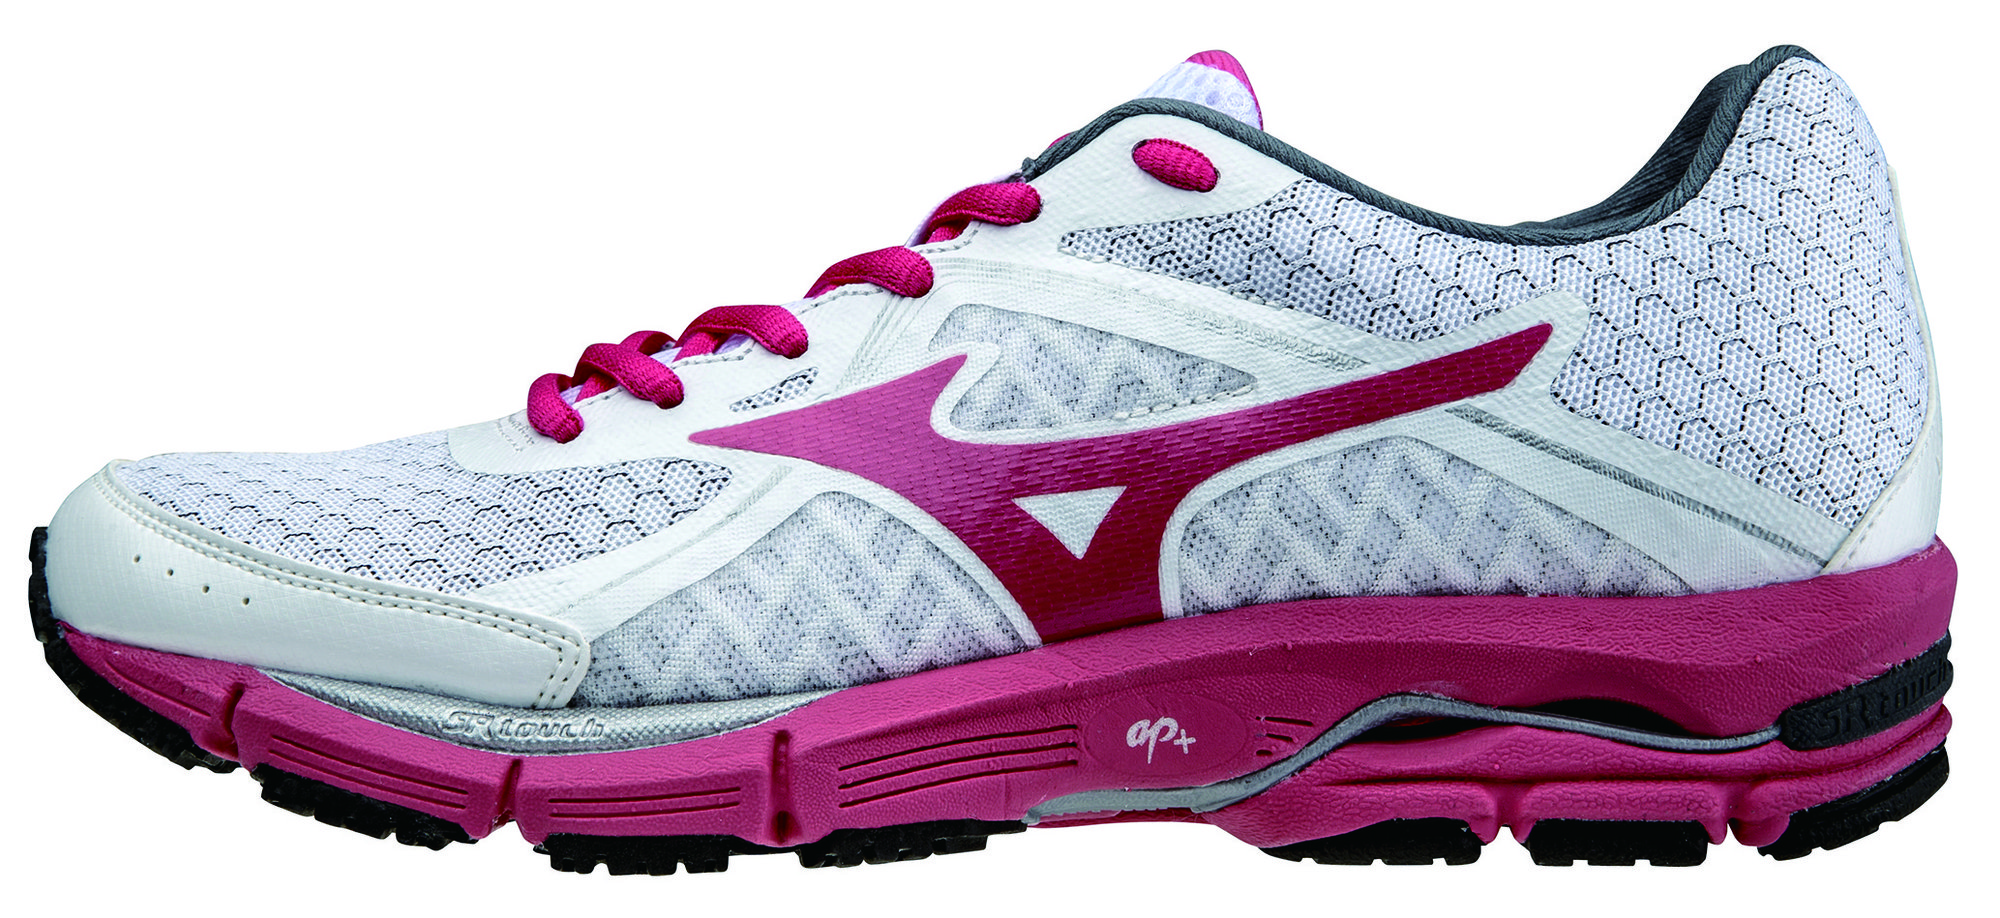 Mizuno Lady Wave Ultima 6 in Weiß, Rot